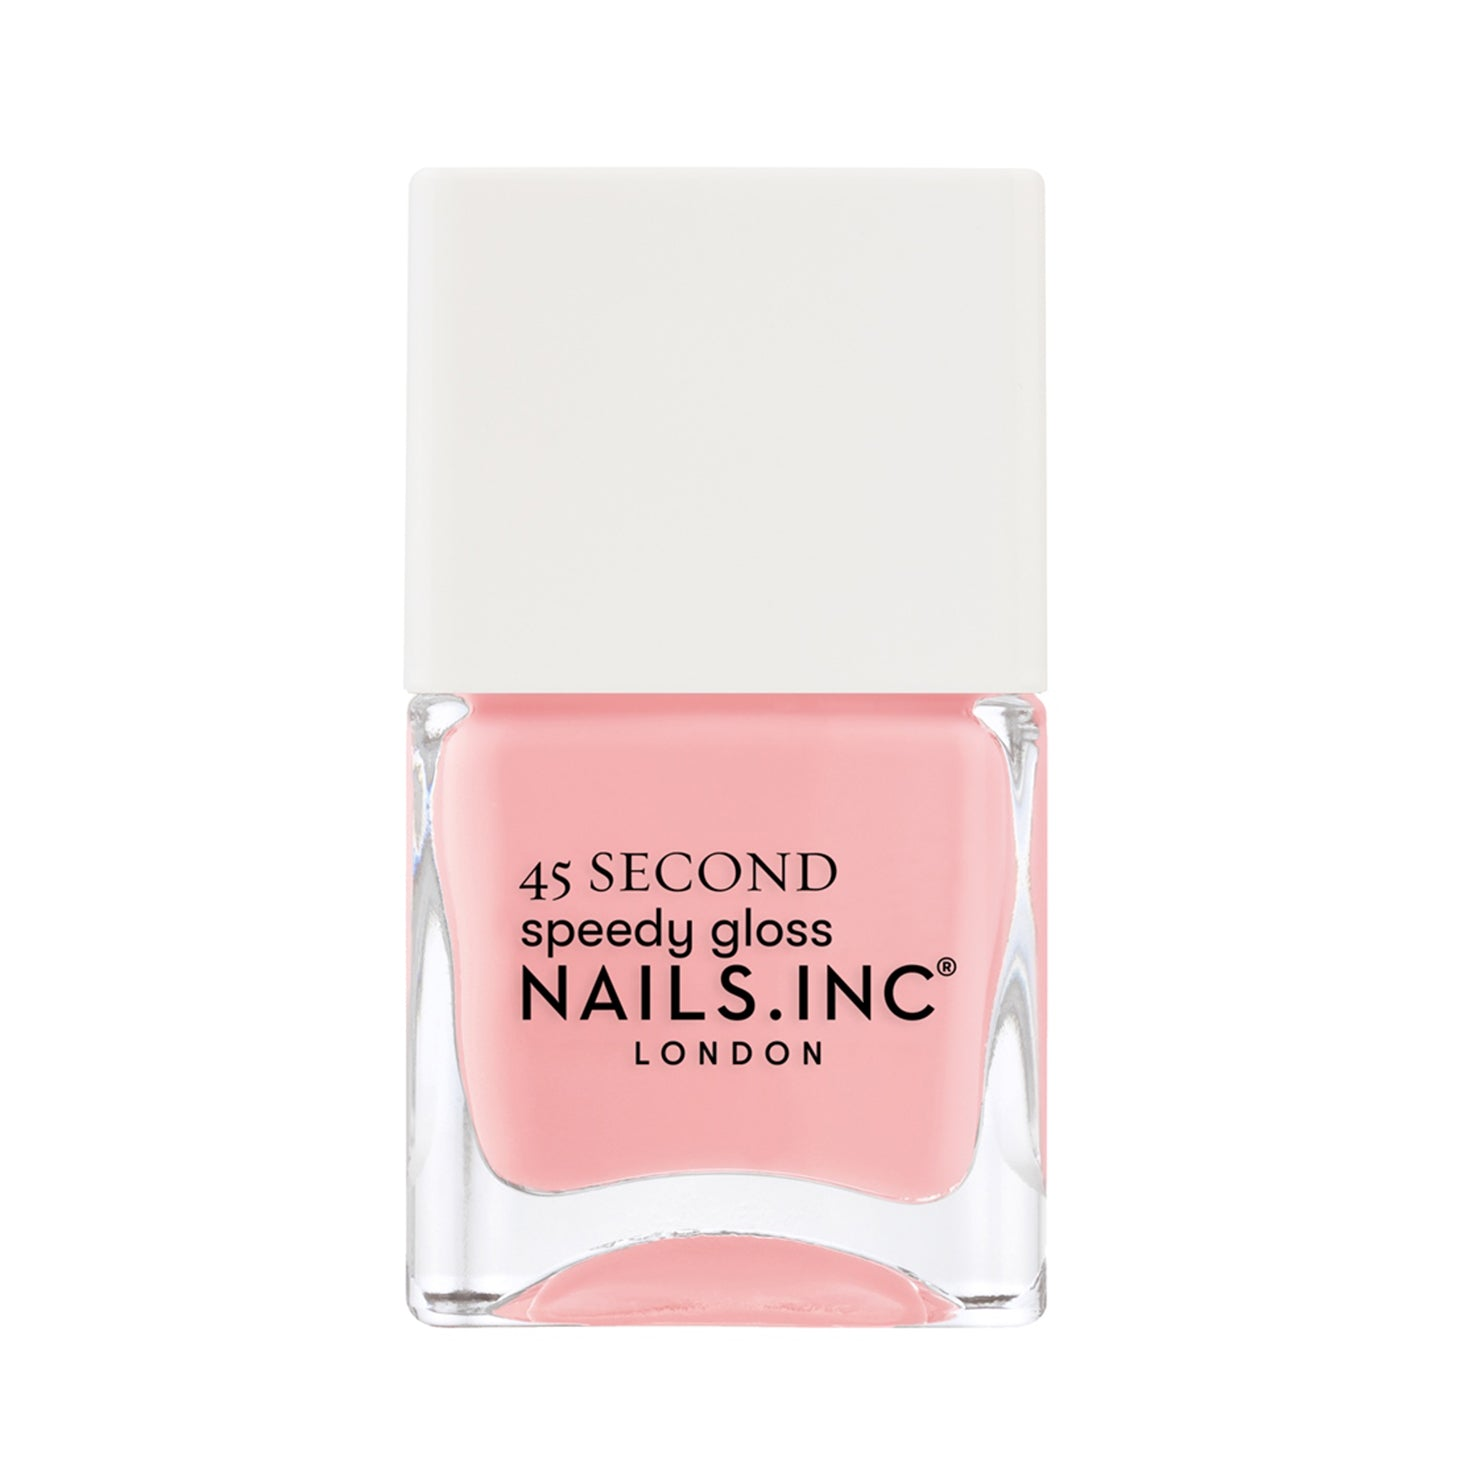 Nails.INC 45 Sec Speedy Gloss - Knightsbridge Nights Out